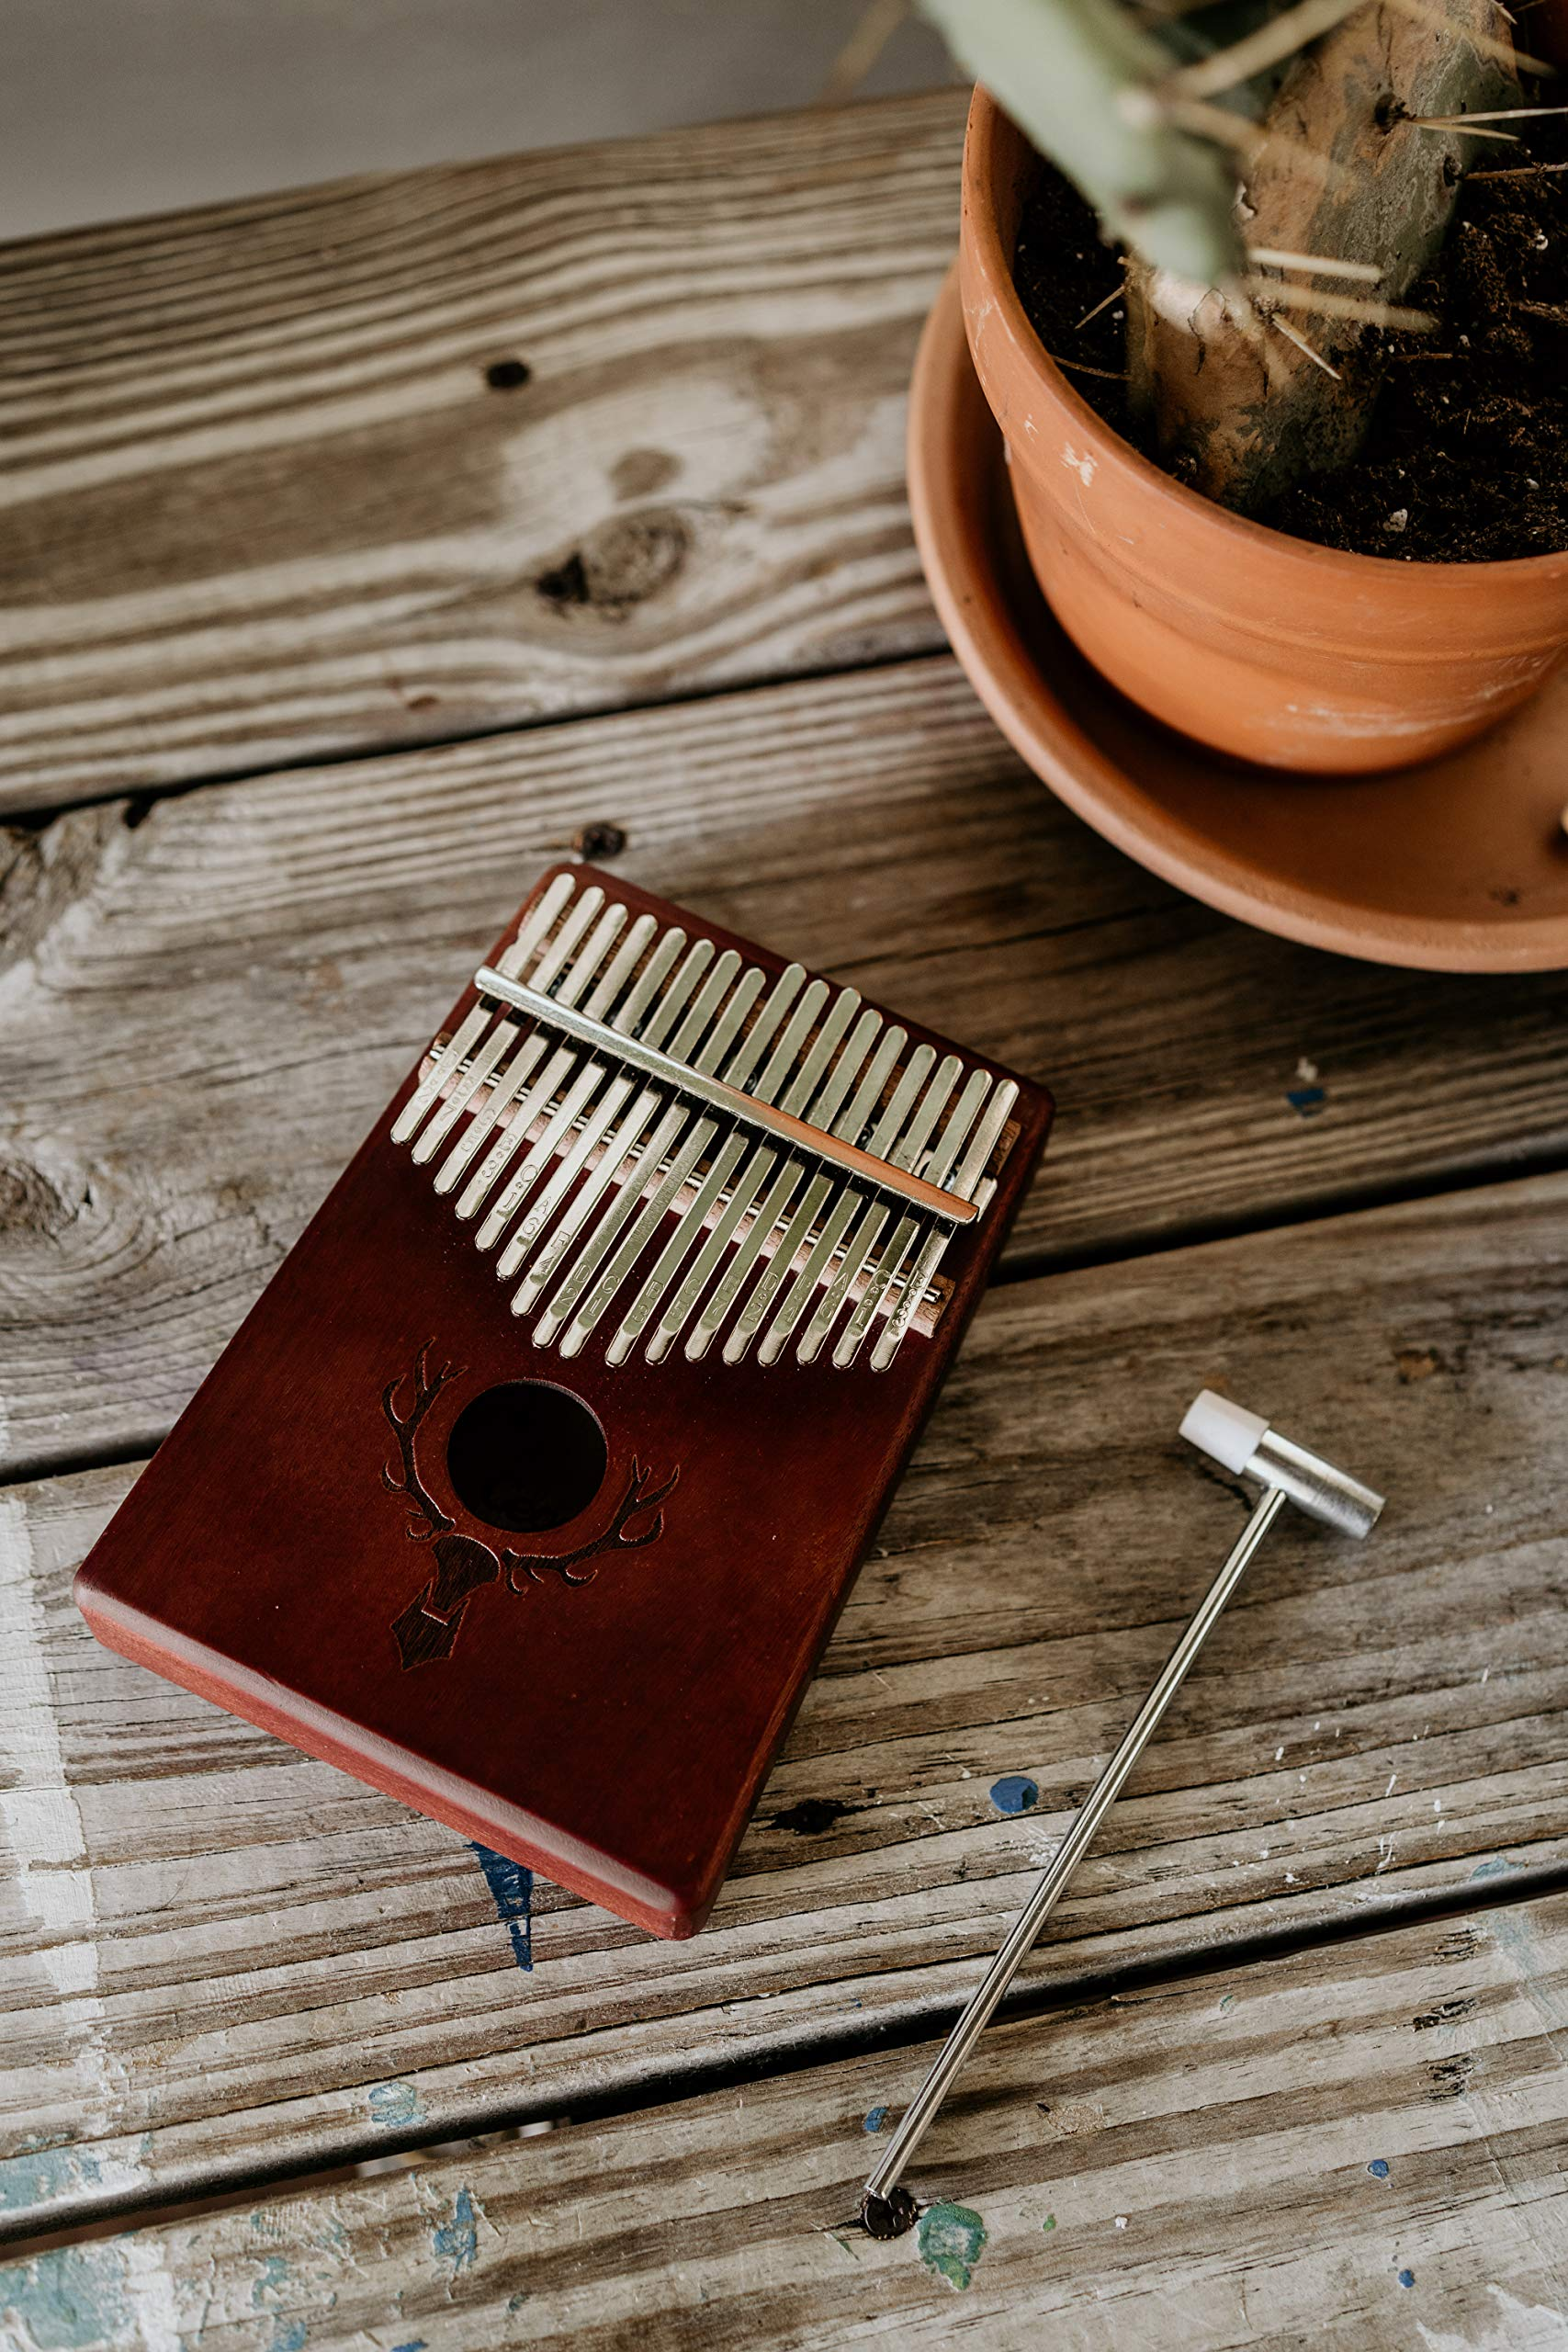 TimberTunes 17 Key Kalimba Thumb Finger Piano Therapy Musical Instrument for Adults Children, Solid Mahogany Wood, Engraved Elk Antler,Tuning Hammer and Music Book, Engraved Keys, Velvet Case, Unique by Timbertunes (Image #9)